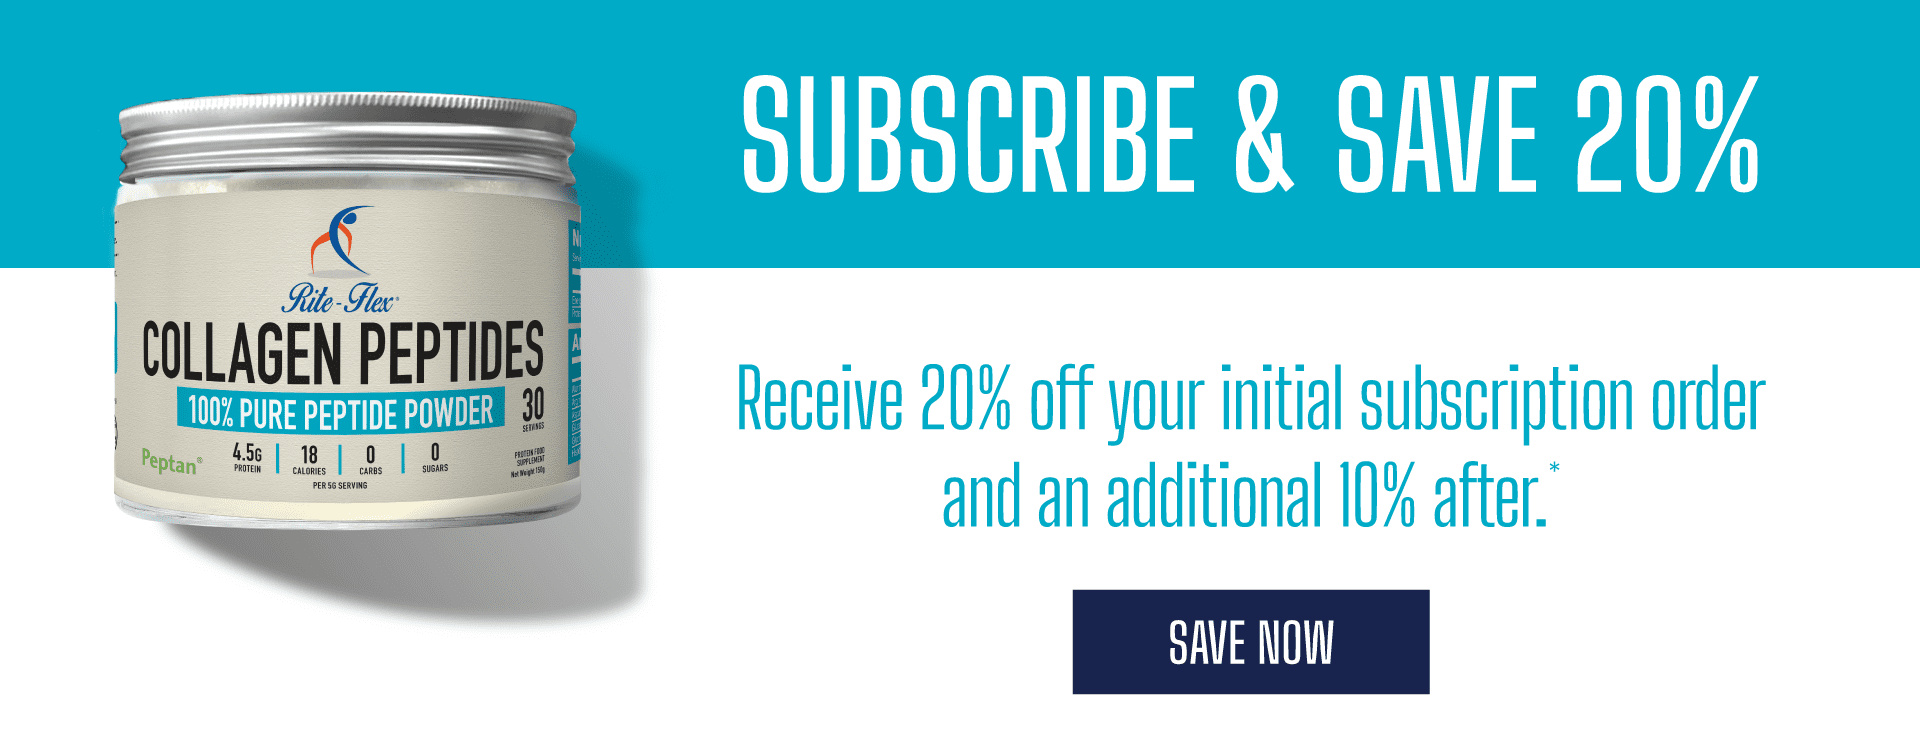 subscribe and save 20% on your initial subscription order of collagen powder